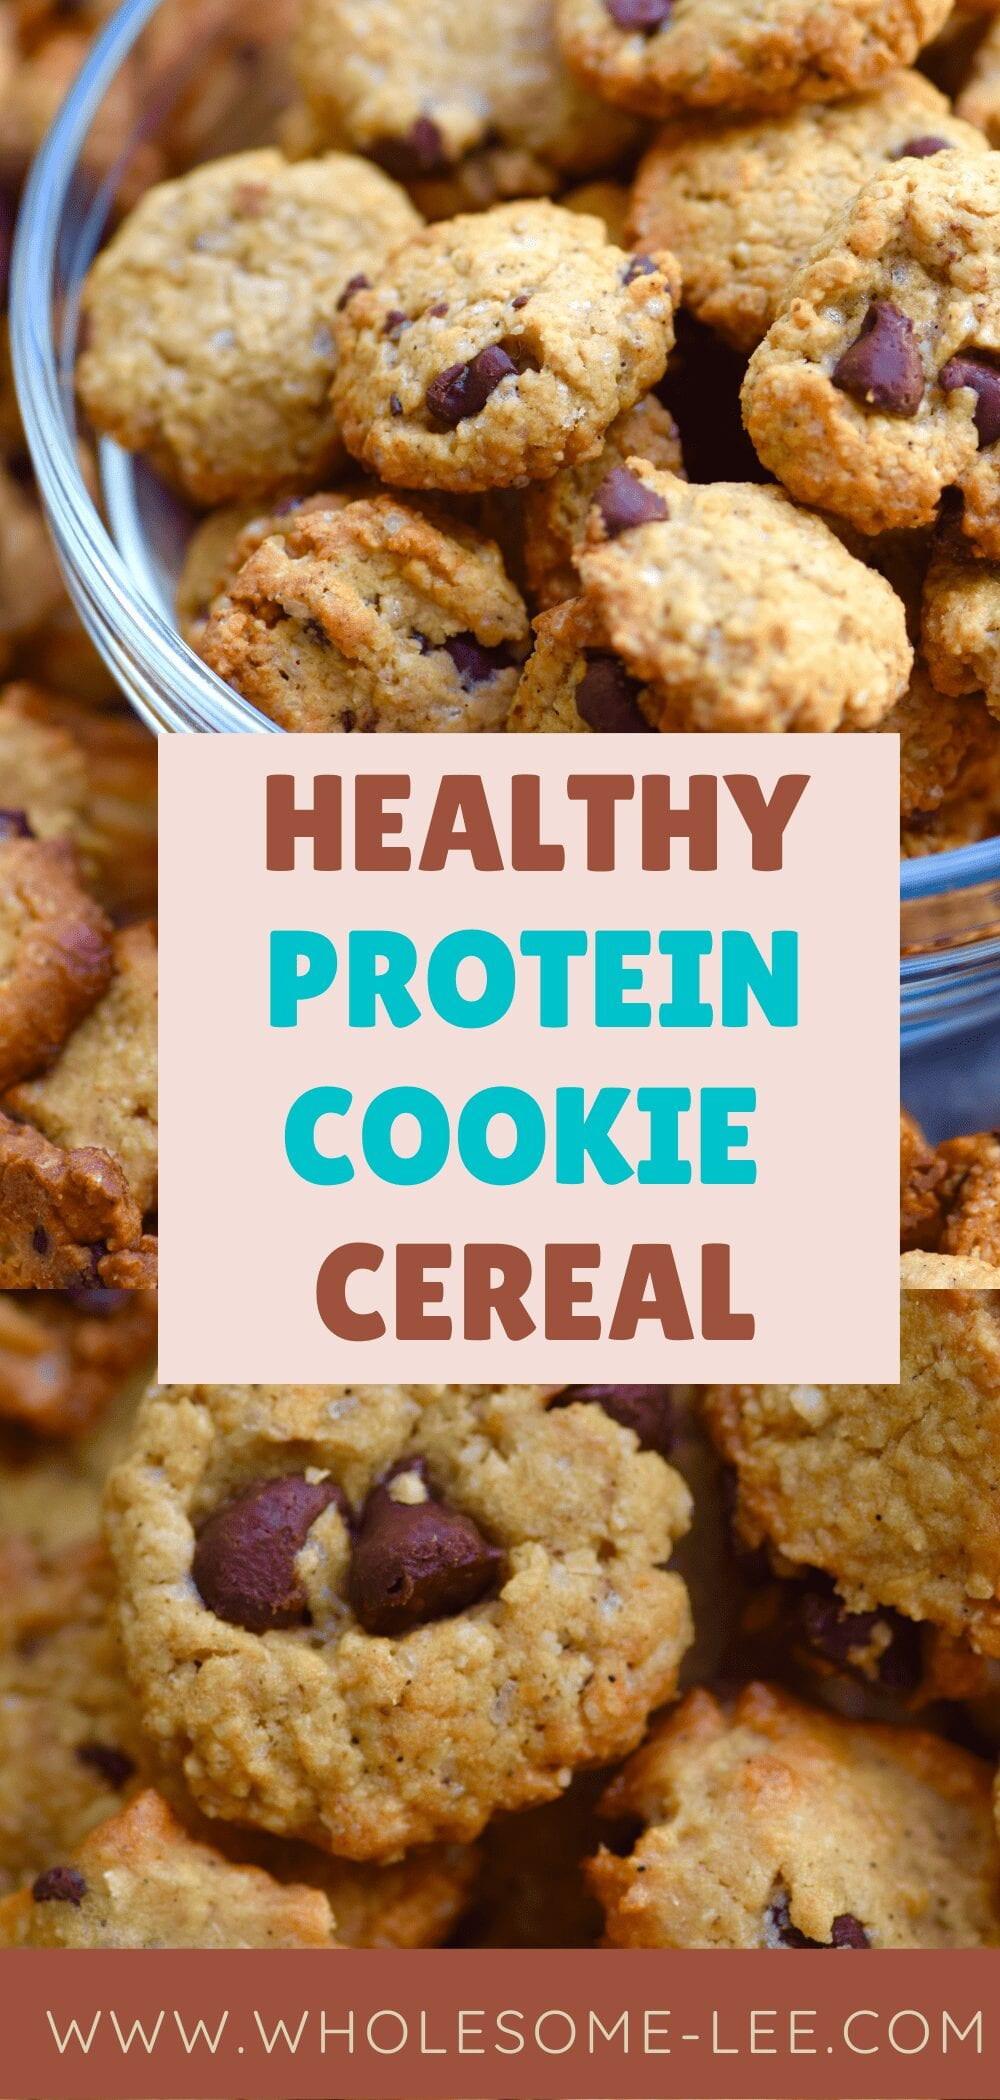 Healthy Protein Cookie Cereal